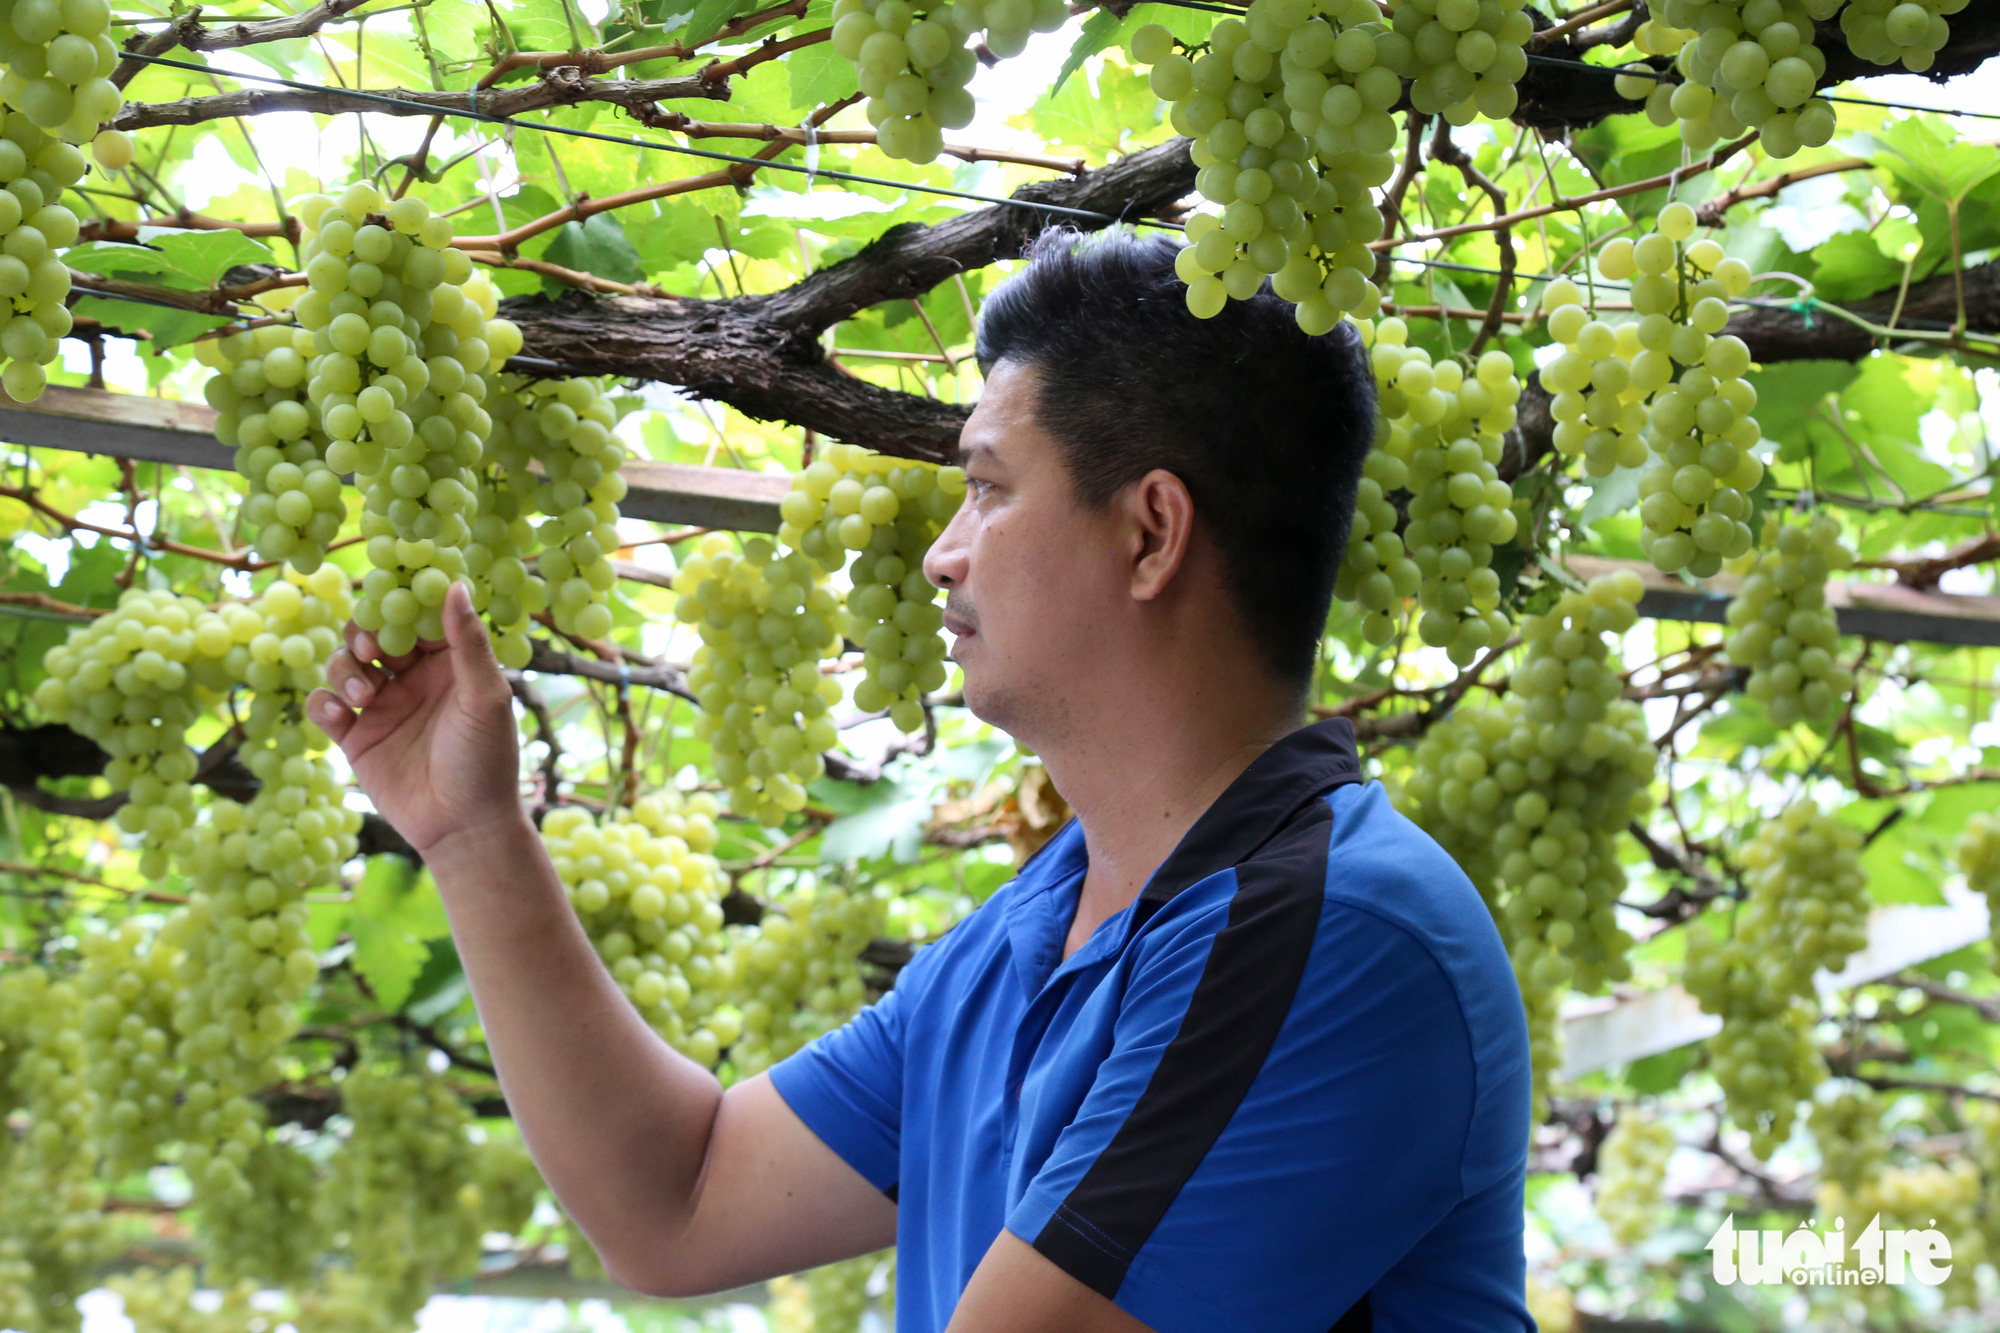 A visitor inspects a bunch of grapes at Truong Van O's home garden in District 9, Ho Chi Minh City, Vietnam. Photo: Thao Le / Tuoi Tre